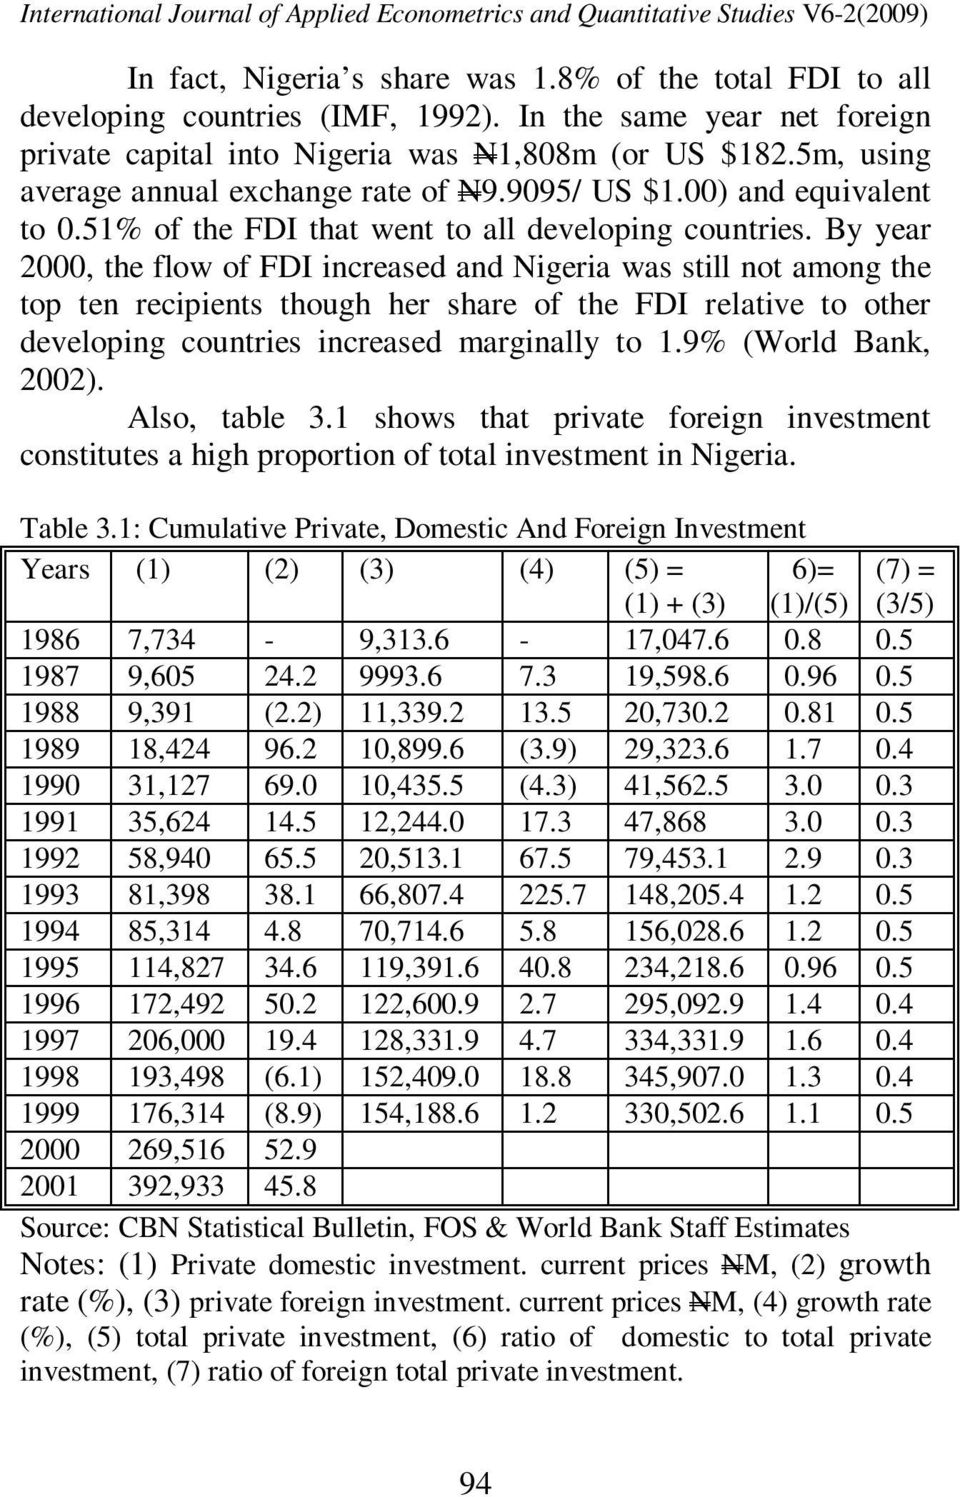 By year 2000, the flow of FDI increased and Nigeria was still not among the top ten recipients though her share of the FDI relative to other developing countries increased marginally to 1.